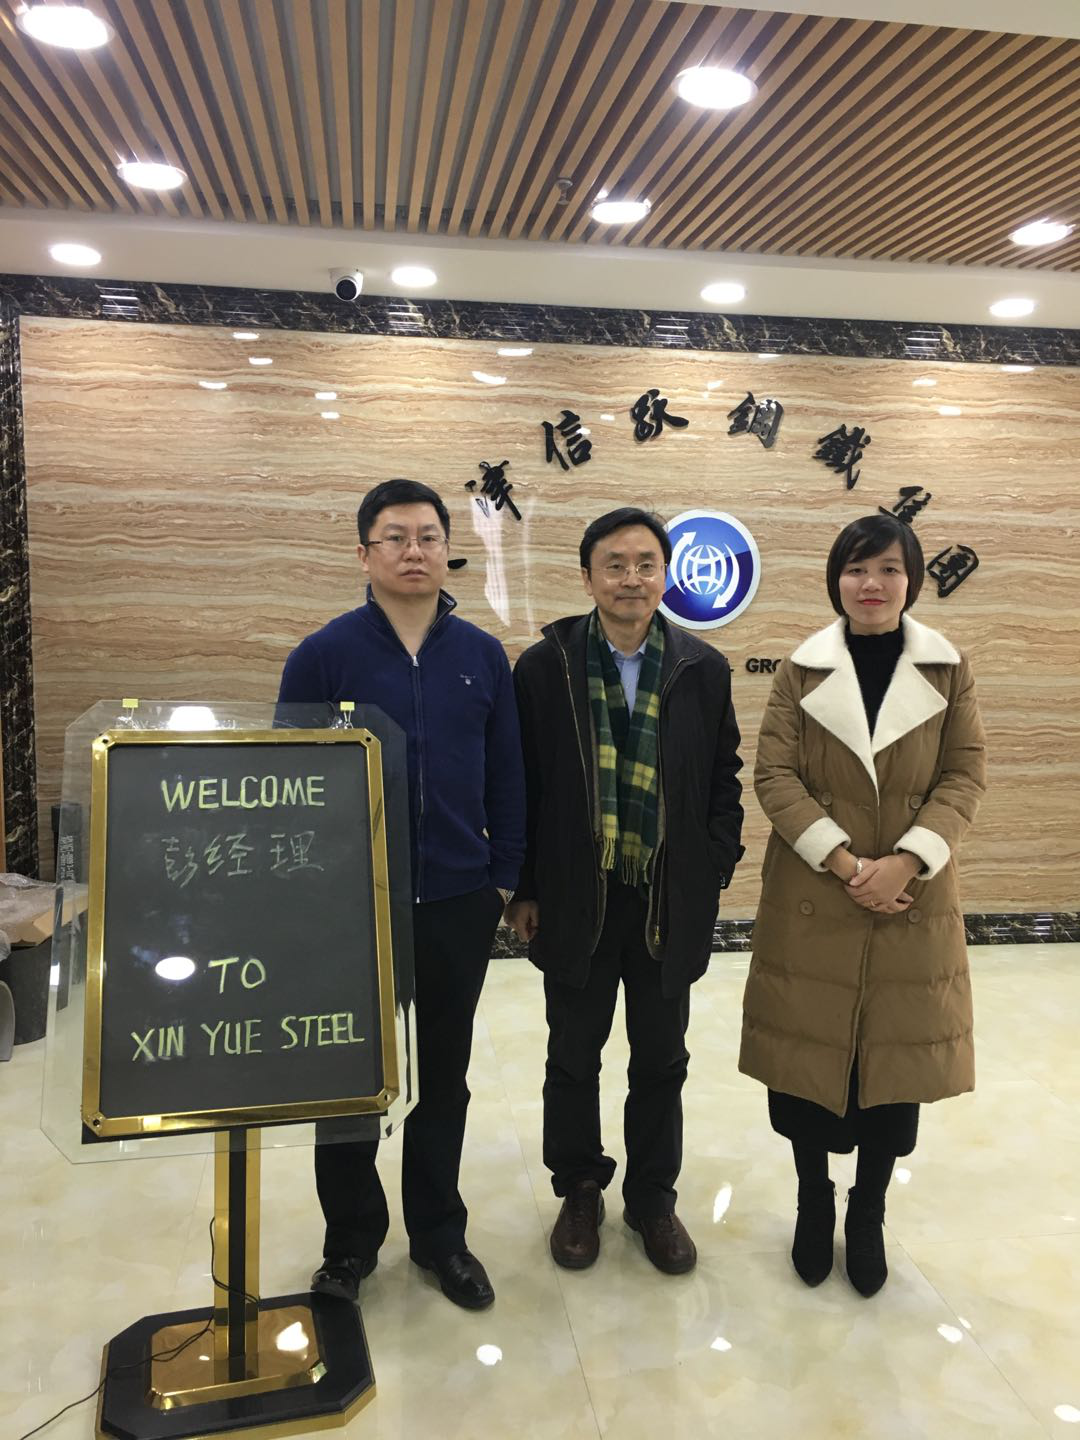 Welcome Canadian client purchaser in China to visit Xinyue